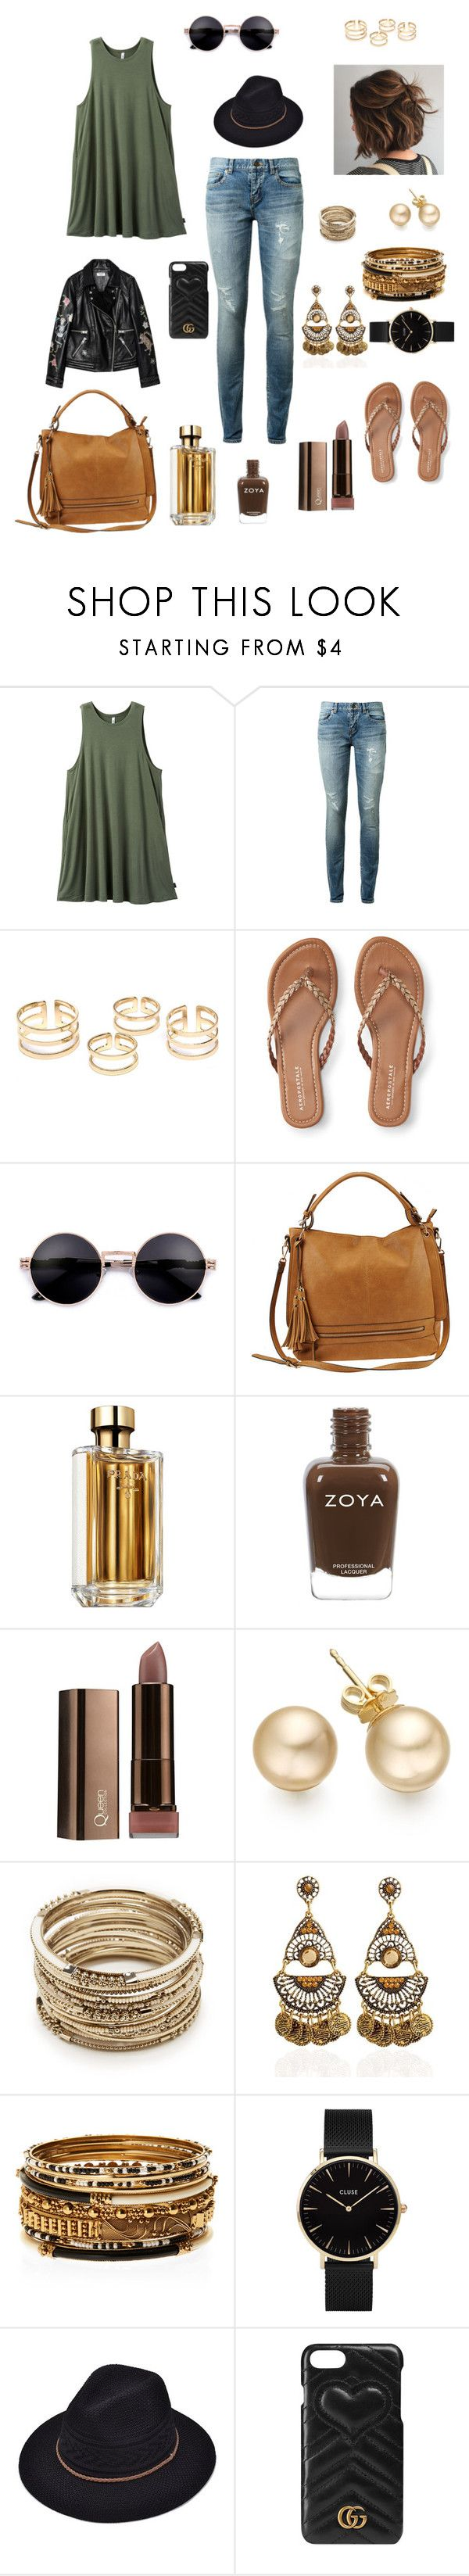 """Honestly... mood 😴"" by kae-mitch on Polyvore featuring RVCA, Yves Saint Laurent, Aéropostale, Urban Expressions, Prada, Sole Society, Amrita Singh, CLUSE and Gucci"